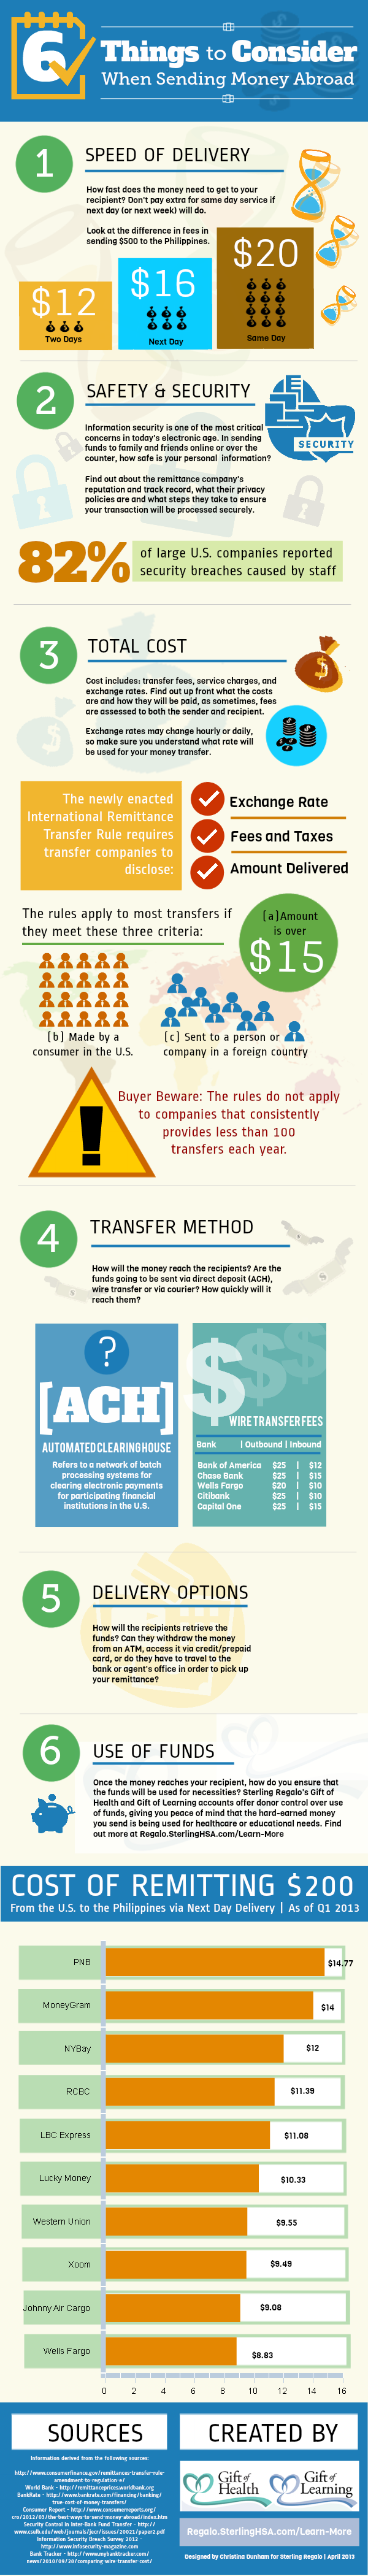 6 Things to Consider When Sending Money to the Philippines - Infographic by Sterling Regalo